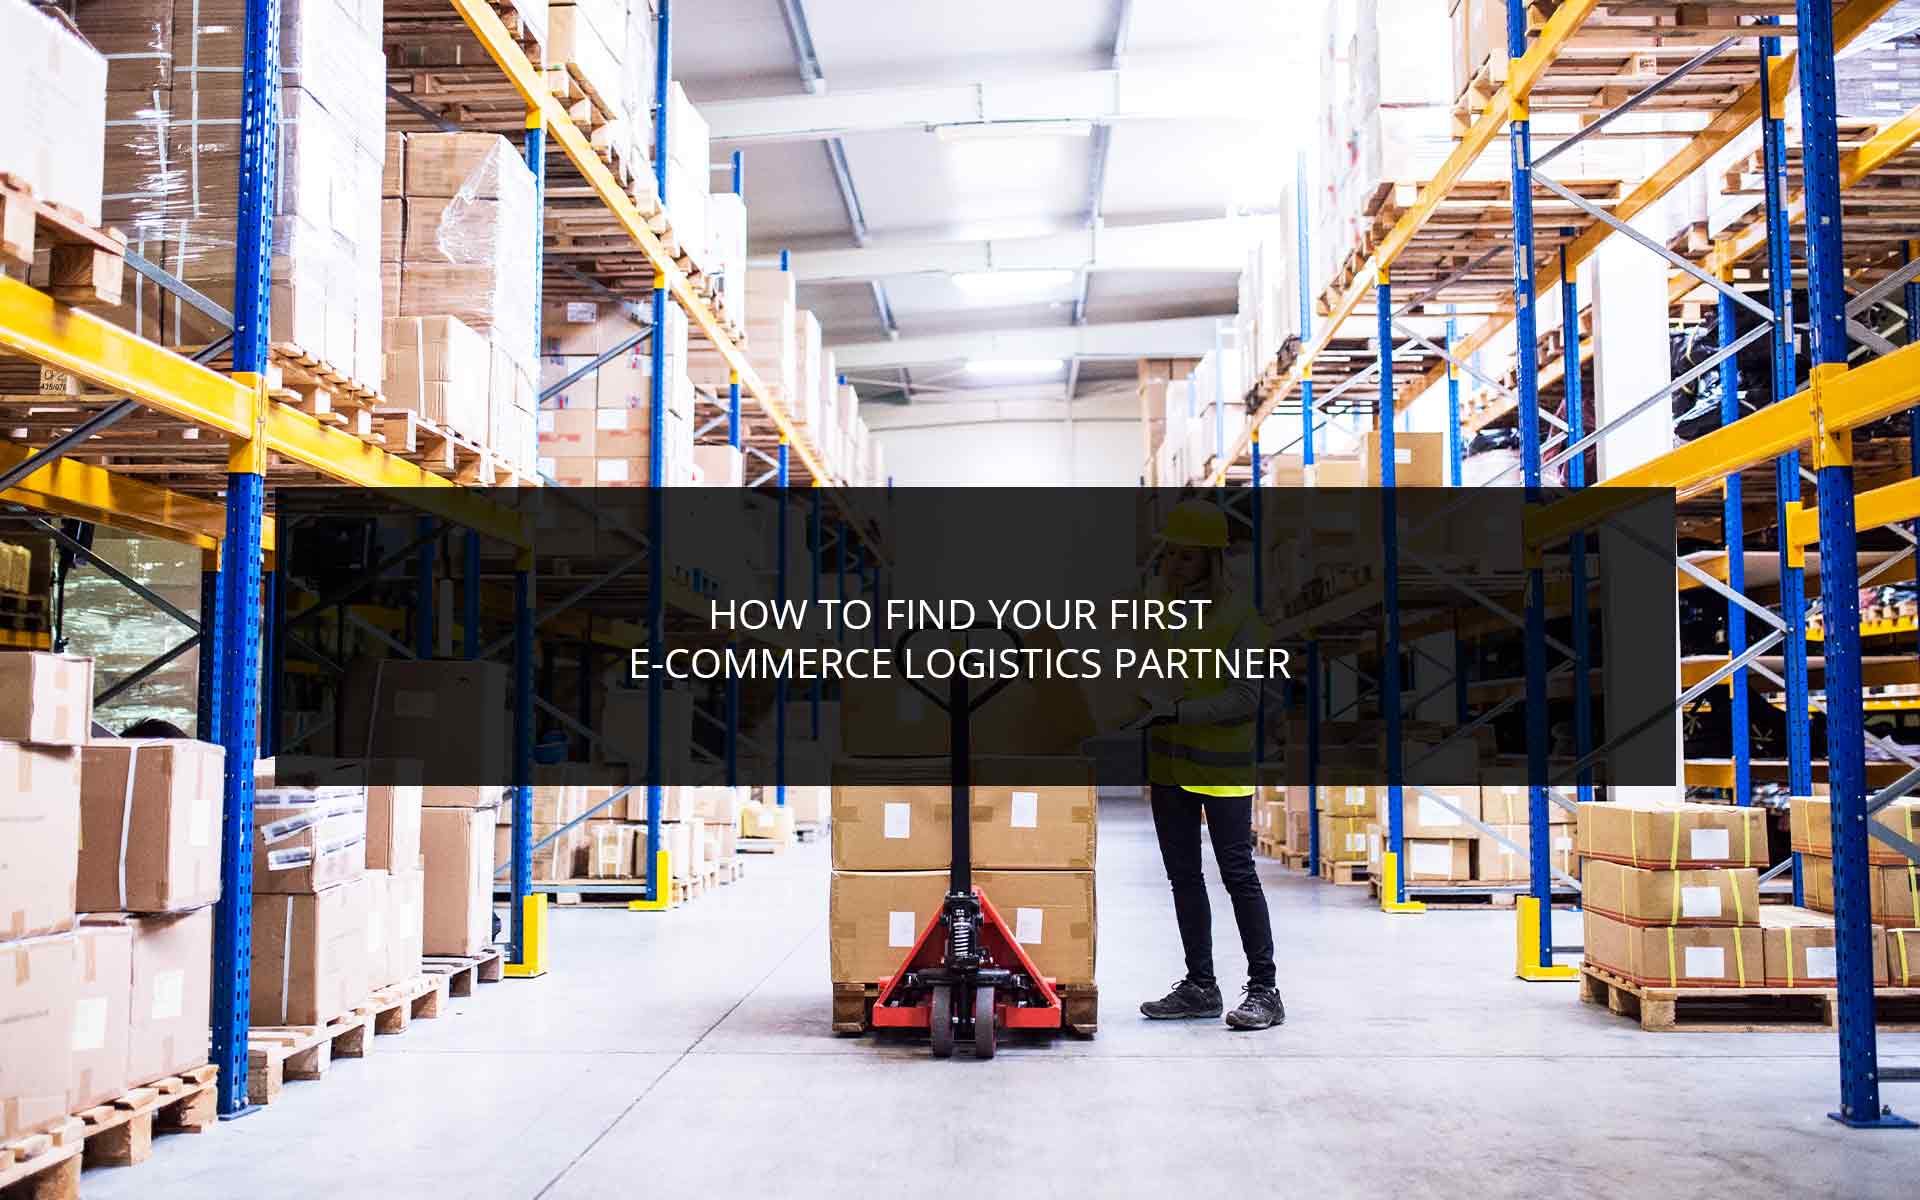 How to Find Your First E-Commerce Logistics Partner